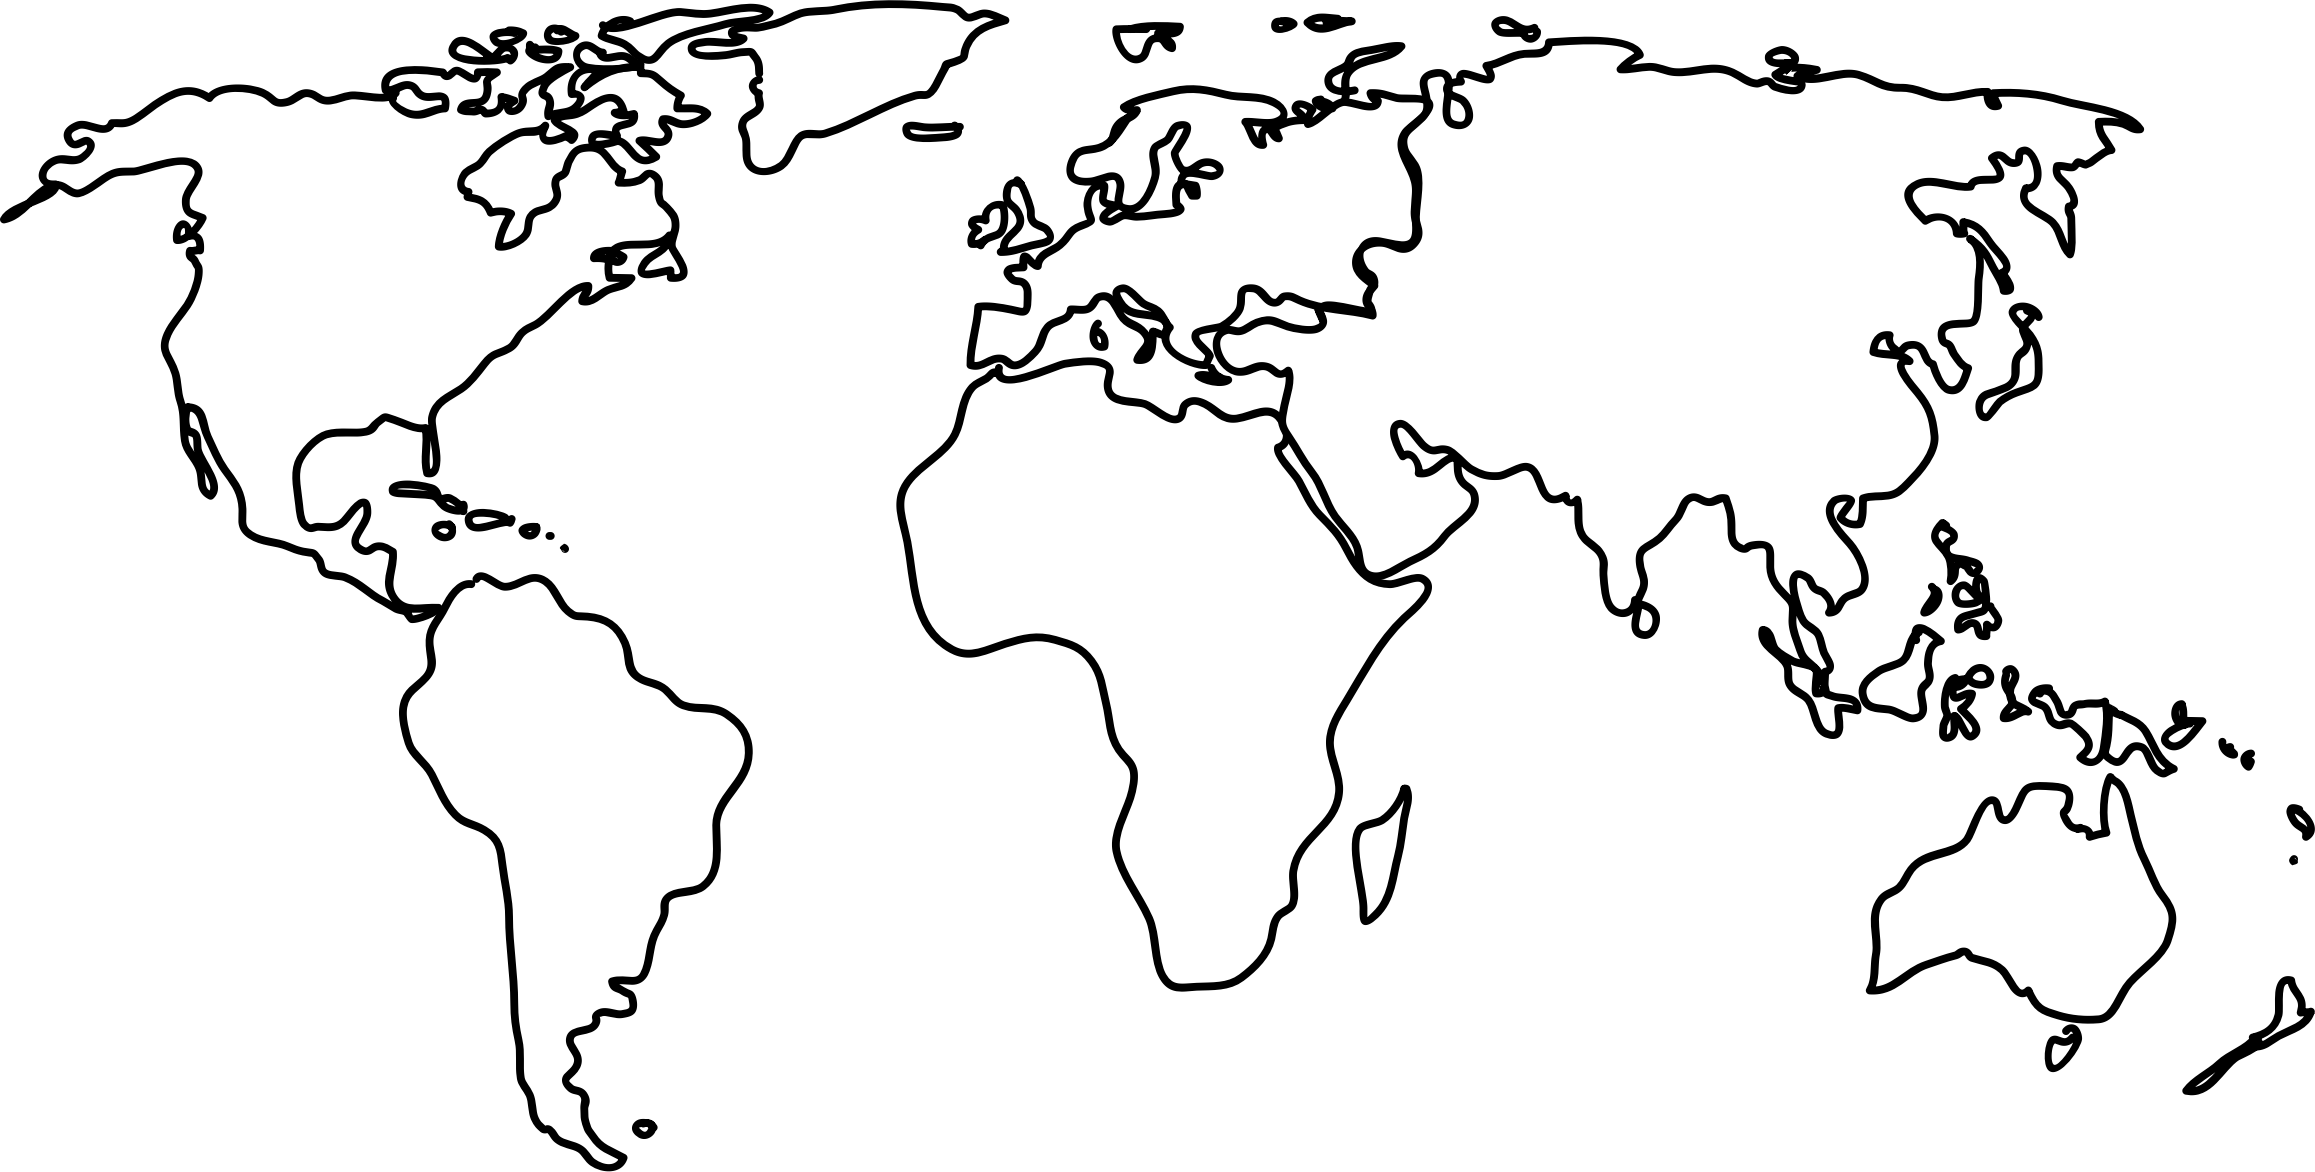 Continents drawing. Continent clipart black and